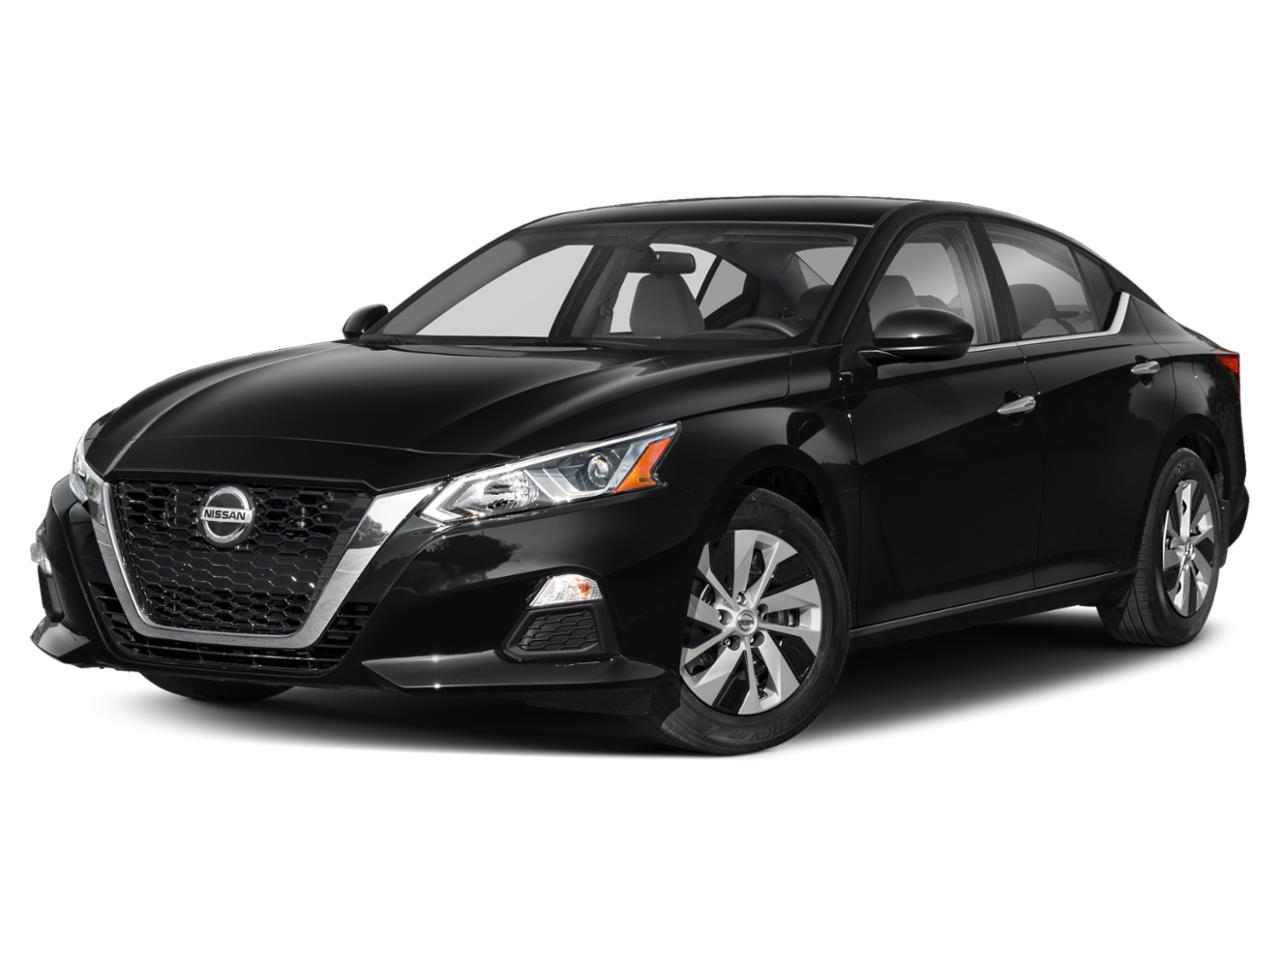 2019 Nissan Altima Vehicle Photo in TEMPLE, TX 76504-3447